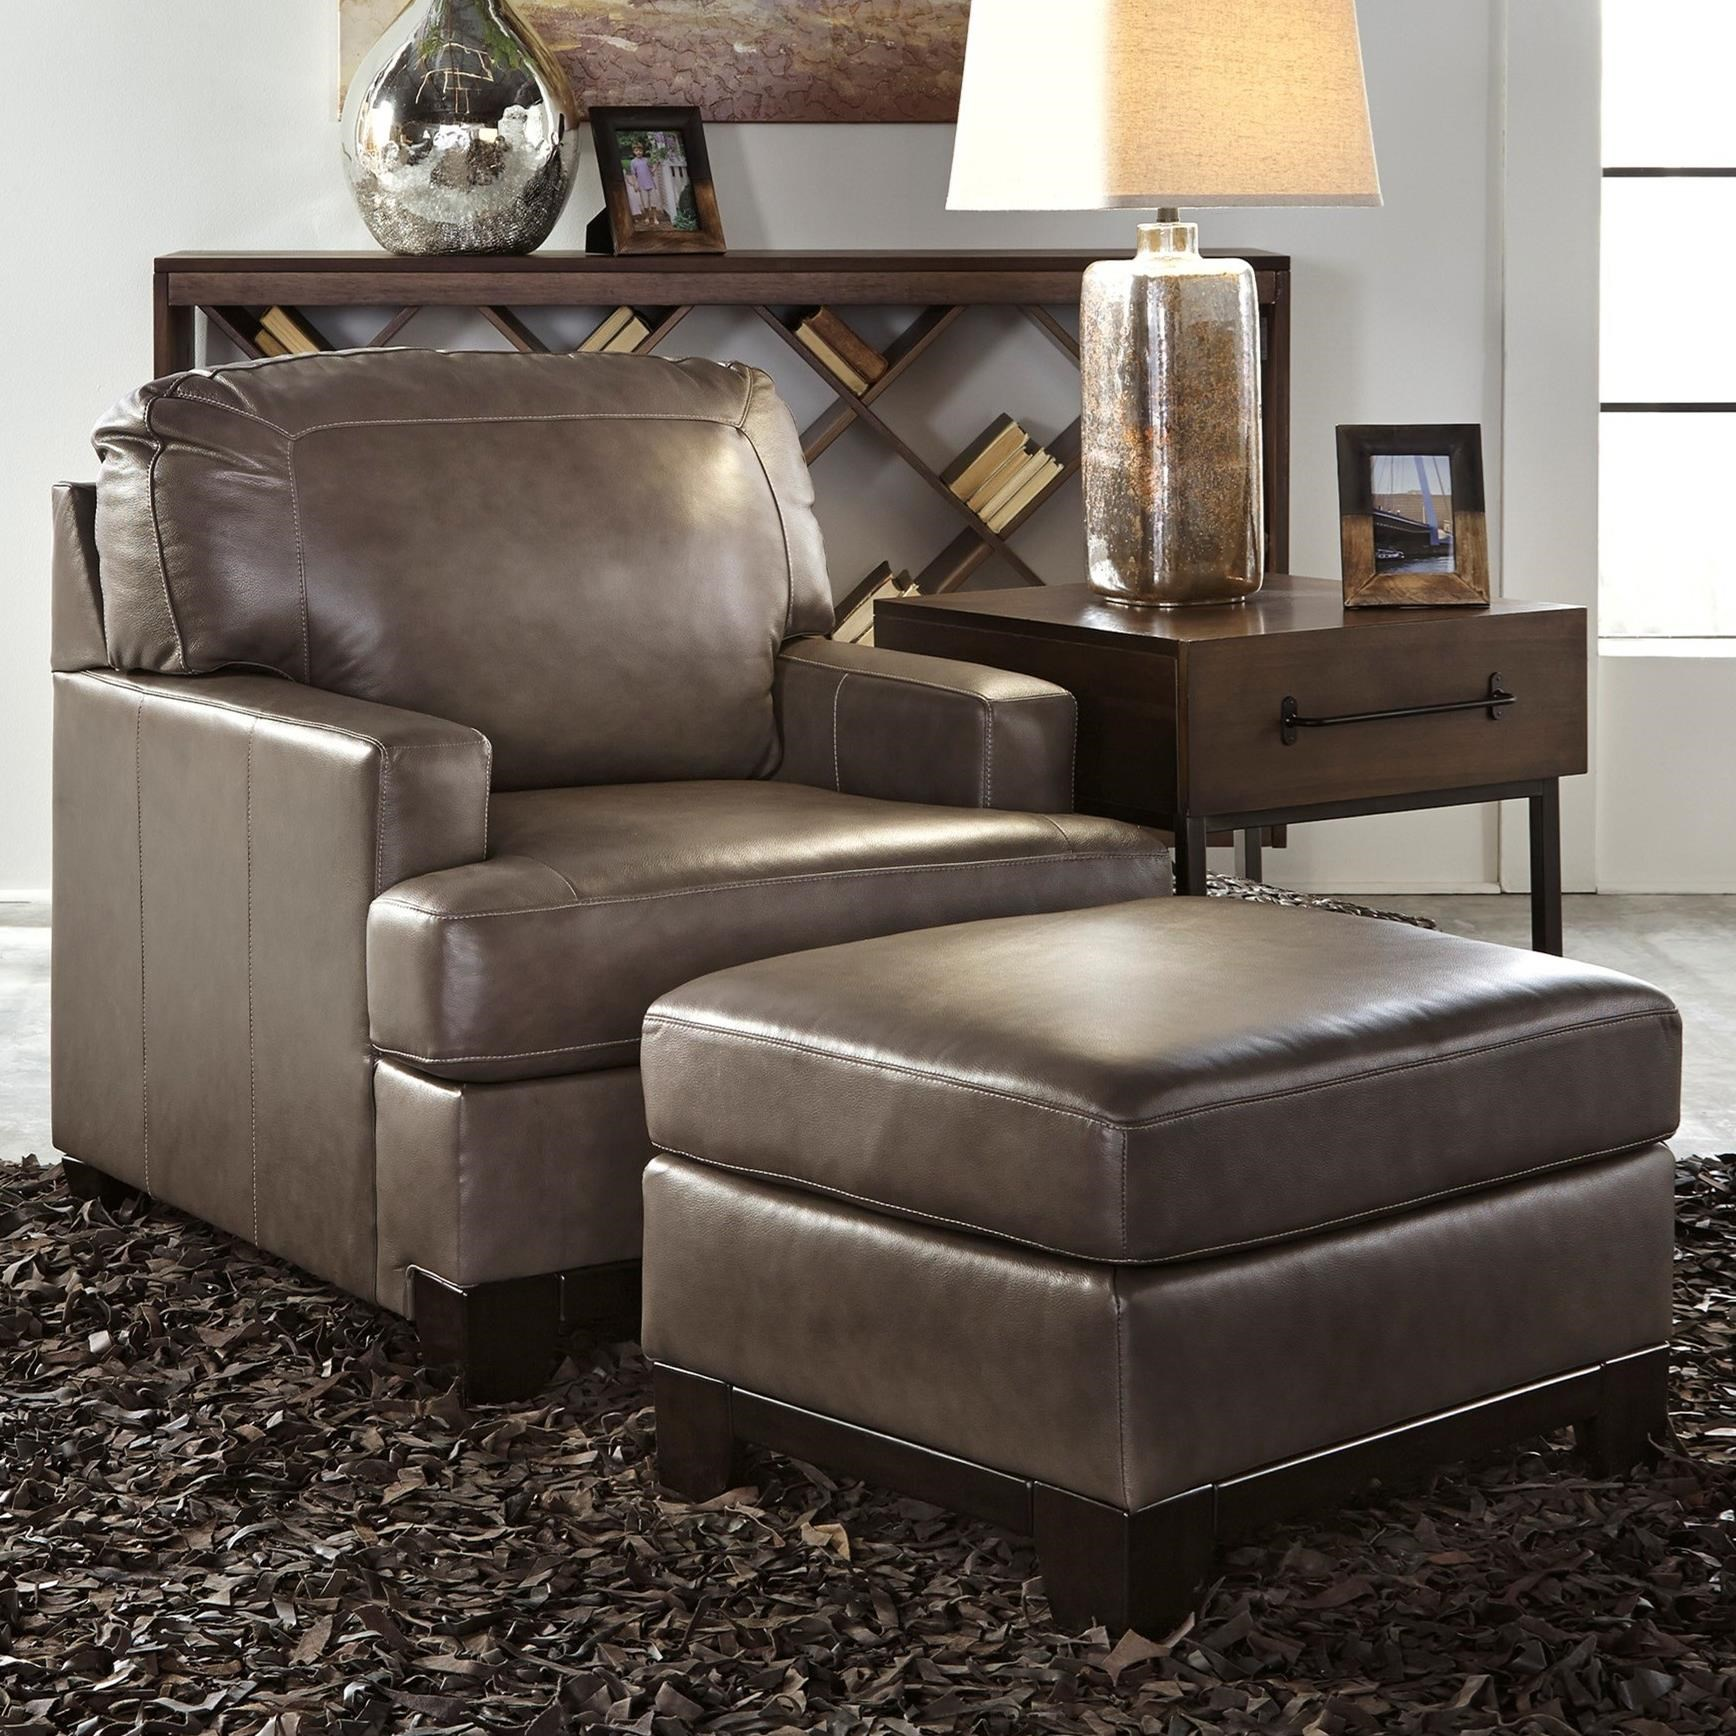 Signature Design By Ashley Derwood Contemporary Leather Match Upholstered Chair Ottoman